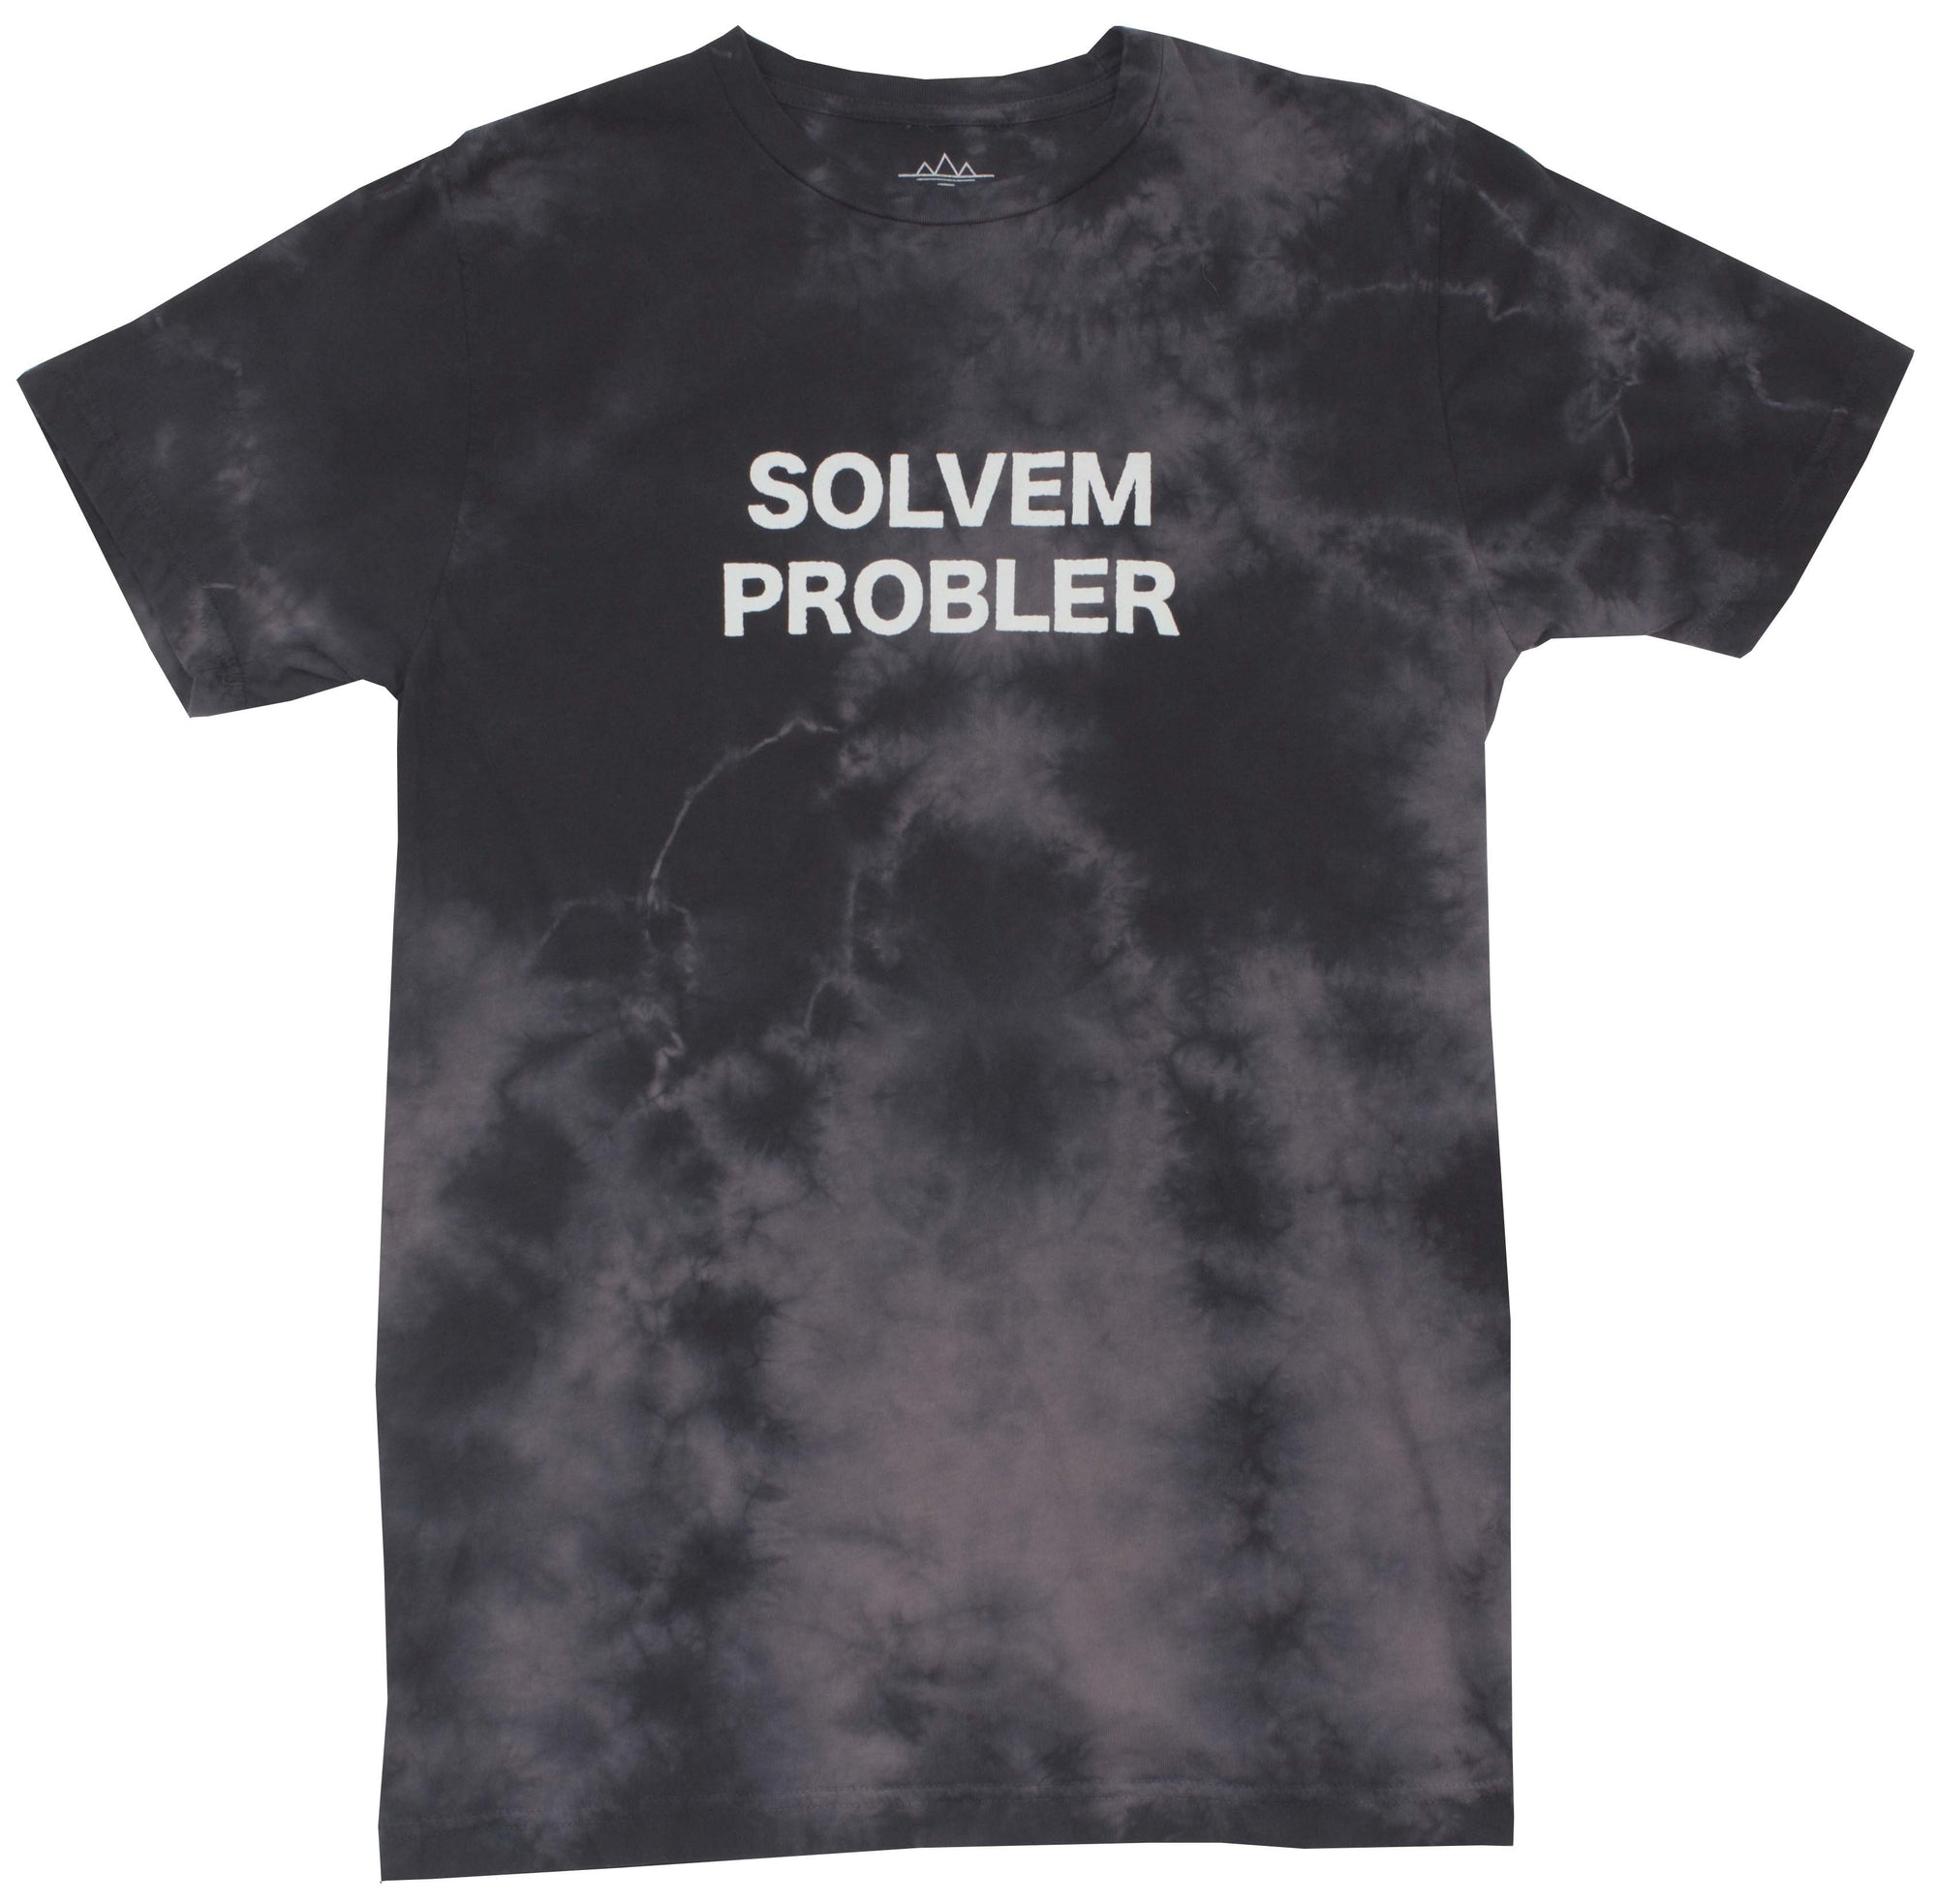 Funny Solvem Probler Mens Black Graphic Tee by Altru Apparel front image